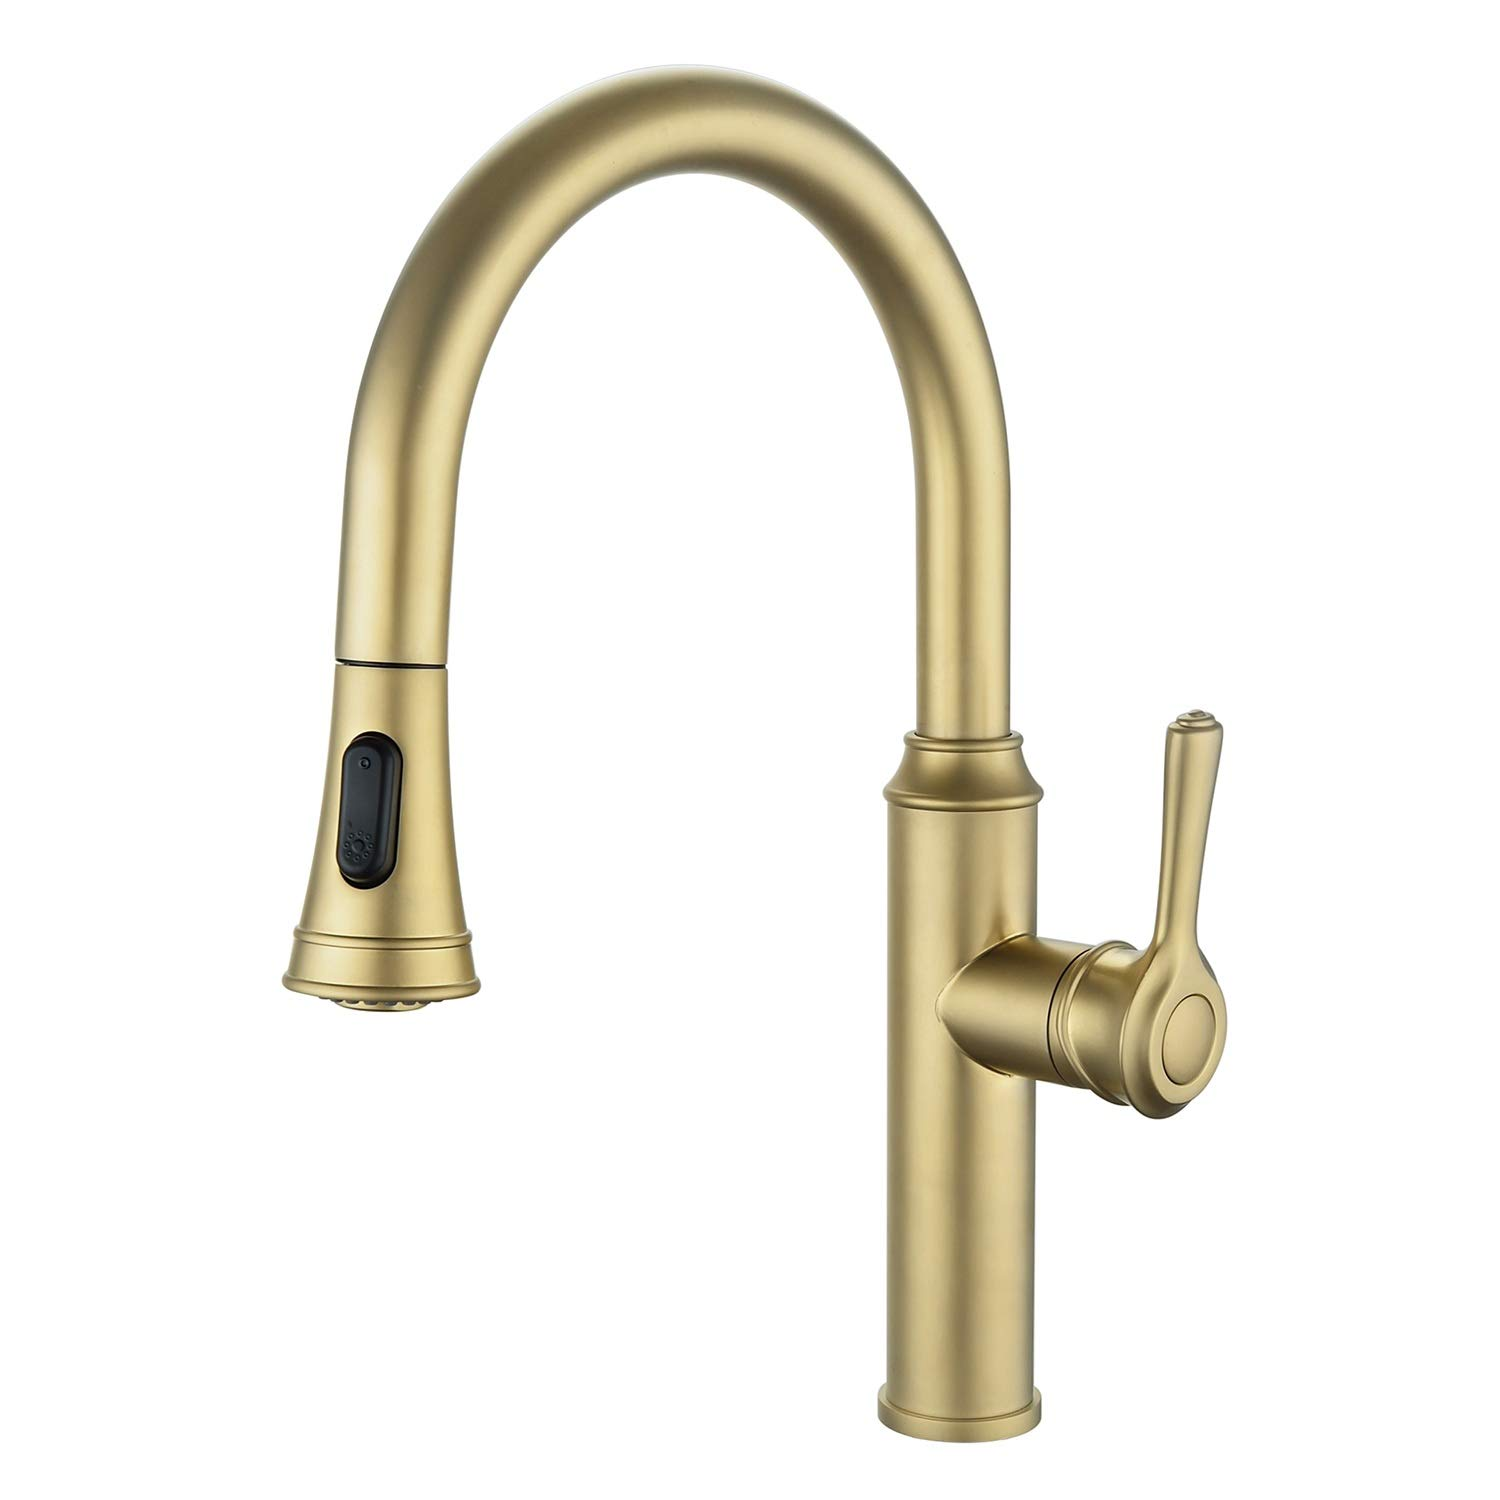 Peppermint Kitchen Sink Faucet Champagne Bronze Single Handle with Pull Down Sprayer Gold